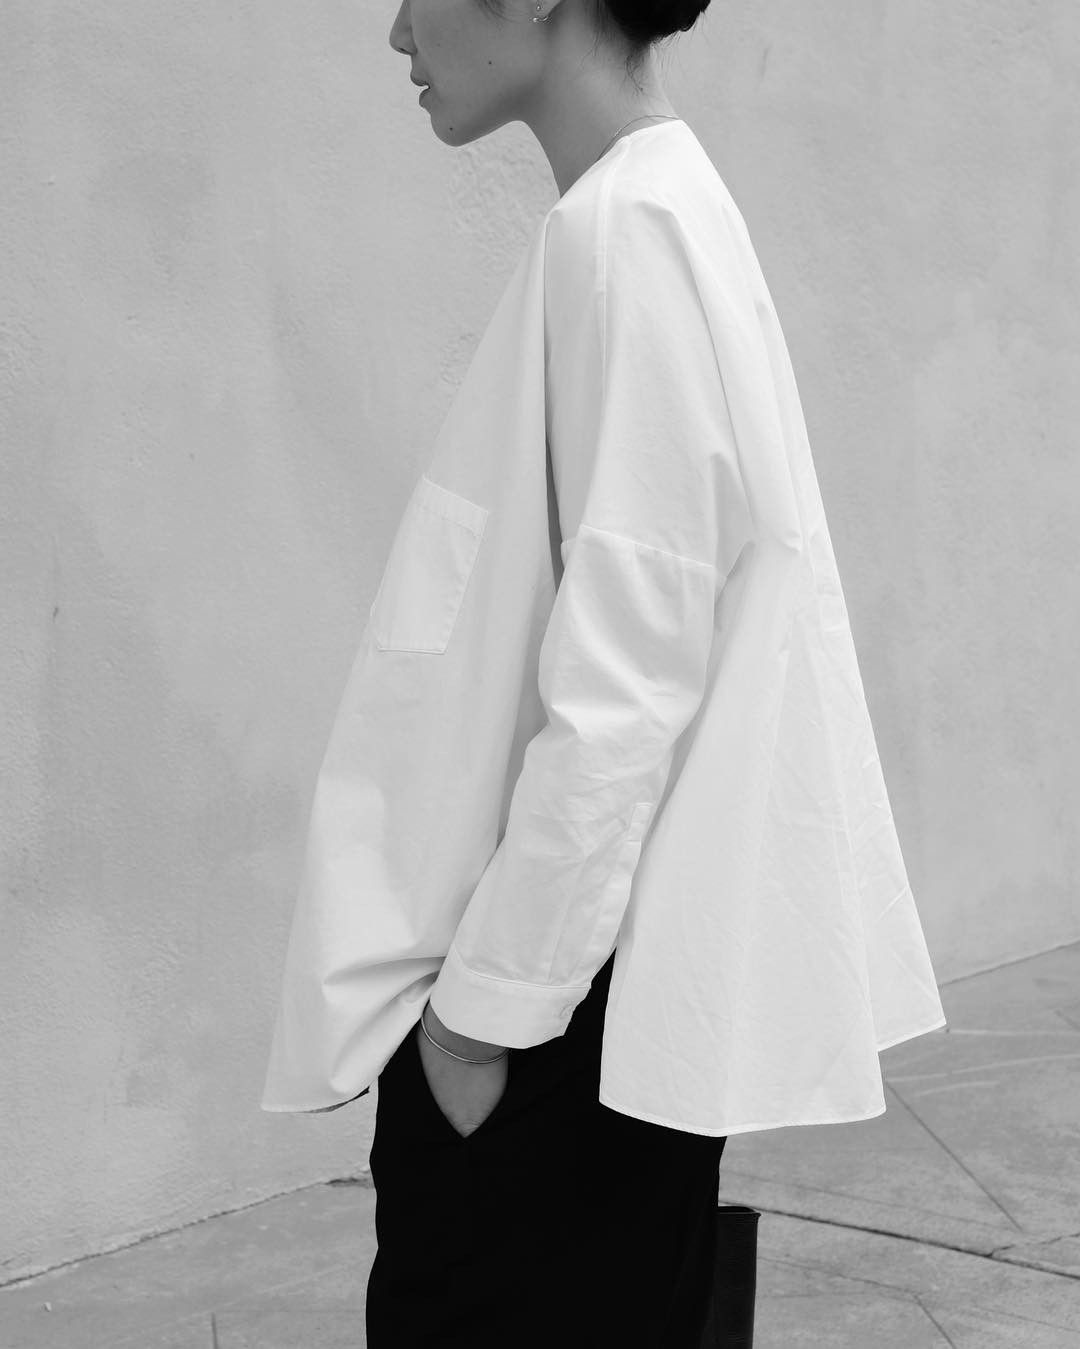 Minimal Cos Ootd See Instagram Photos And Videos From Ann Kim Andyheart Wear Pinterest